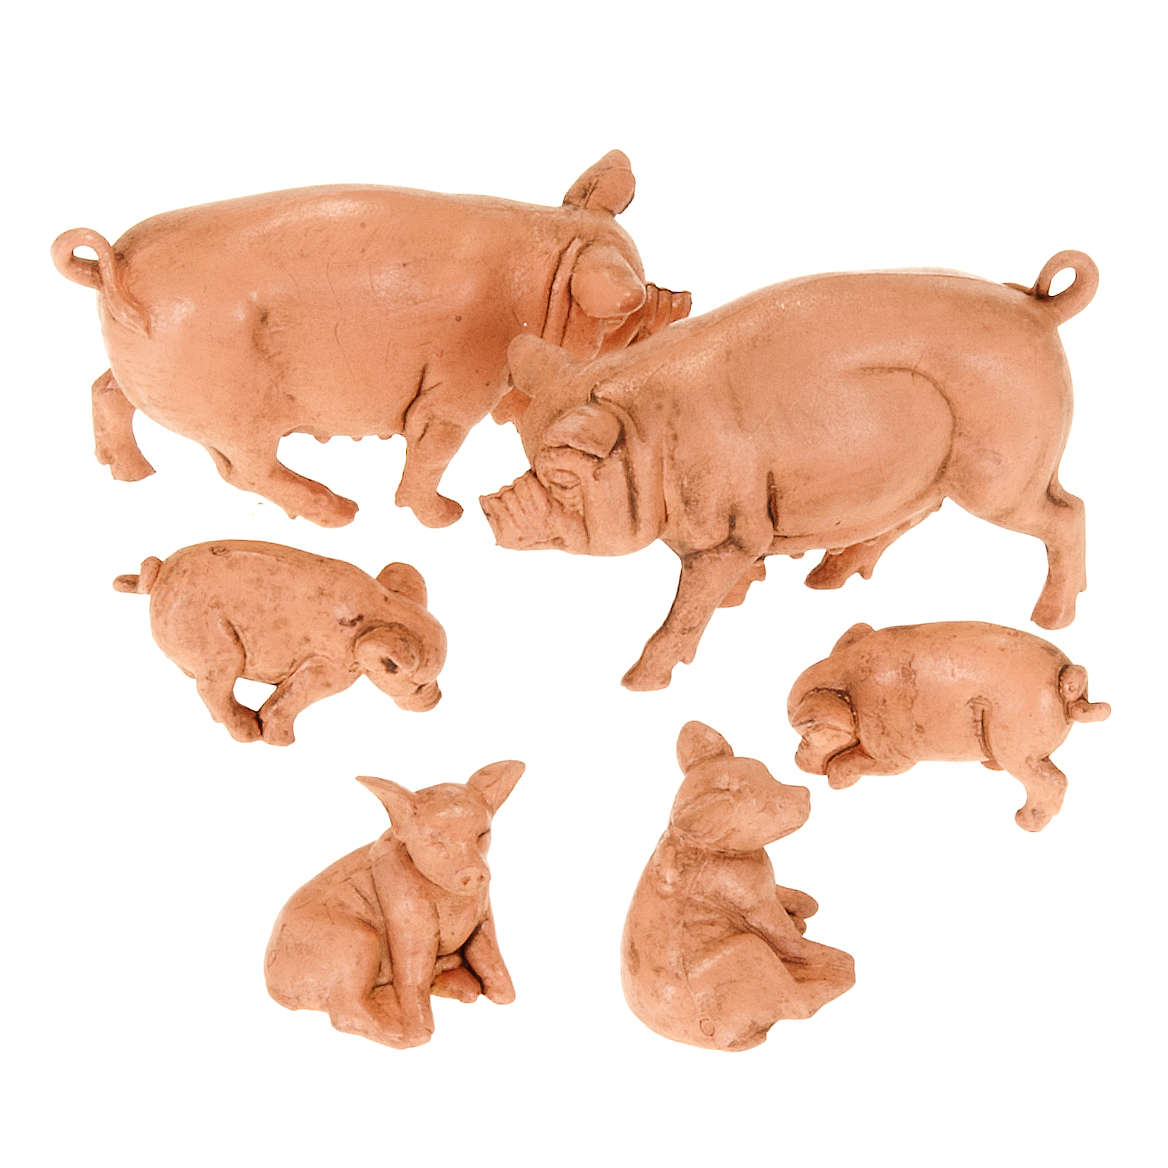 Nativity scene figurines, pigs family 10cm, 6 pieces 3